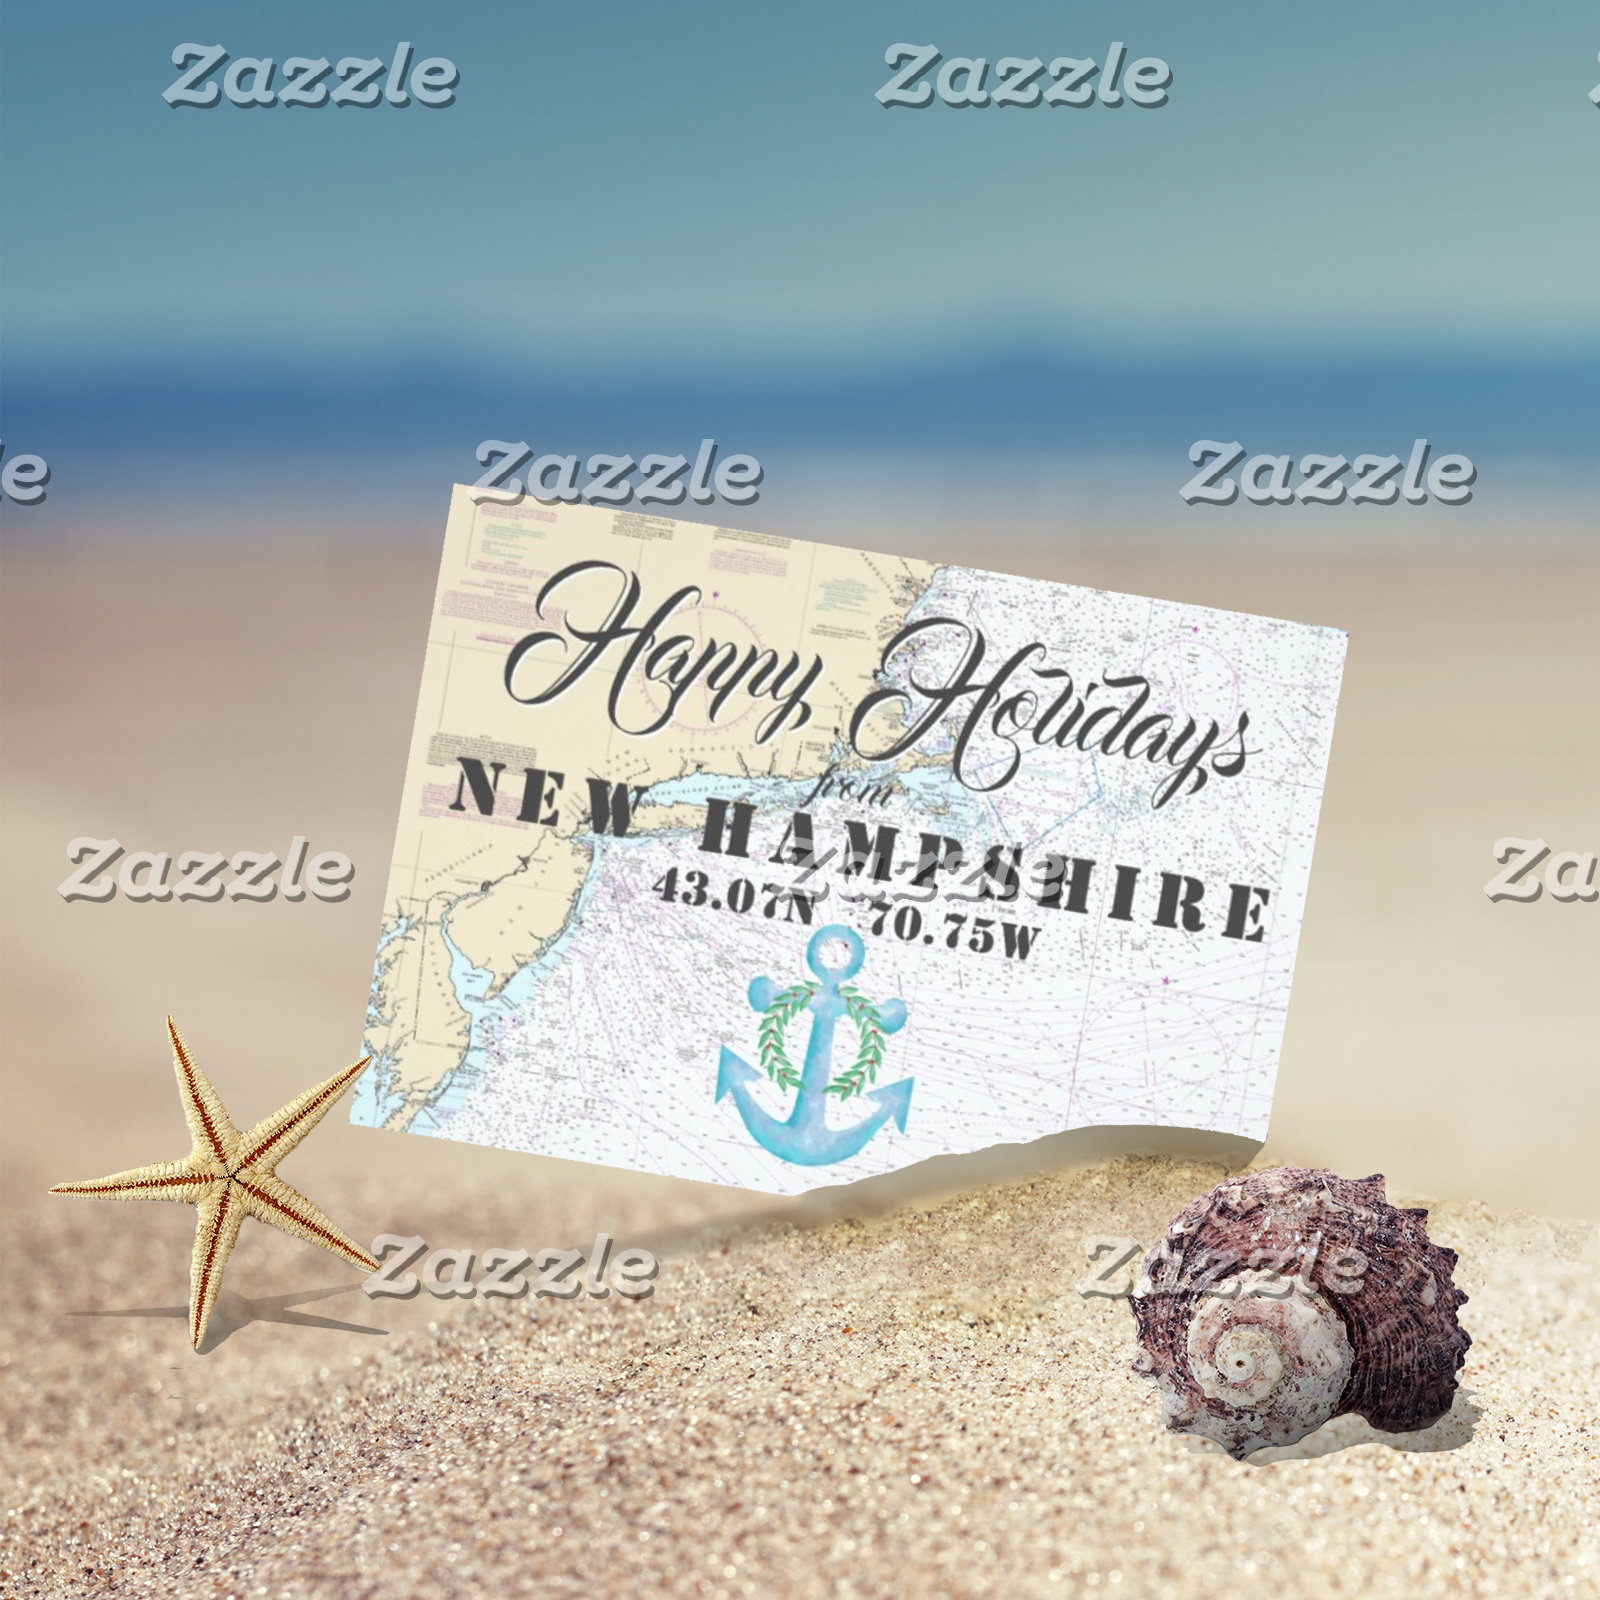 Happy Holidays from New Hampshire Nautical Design